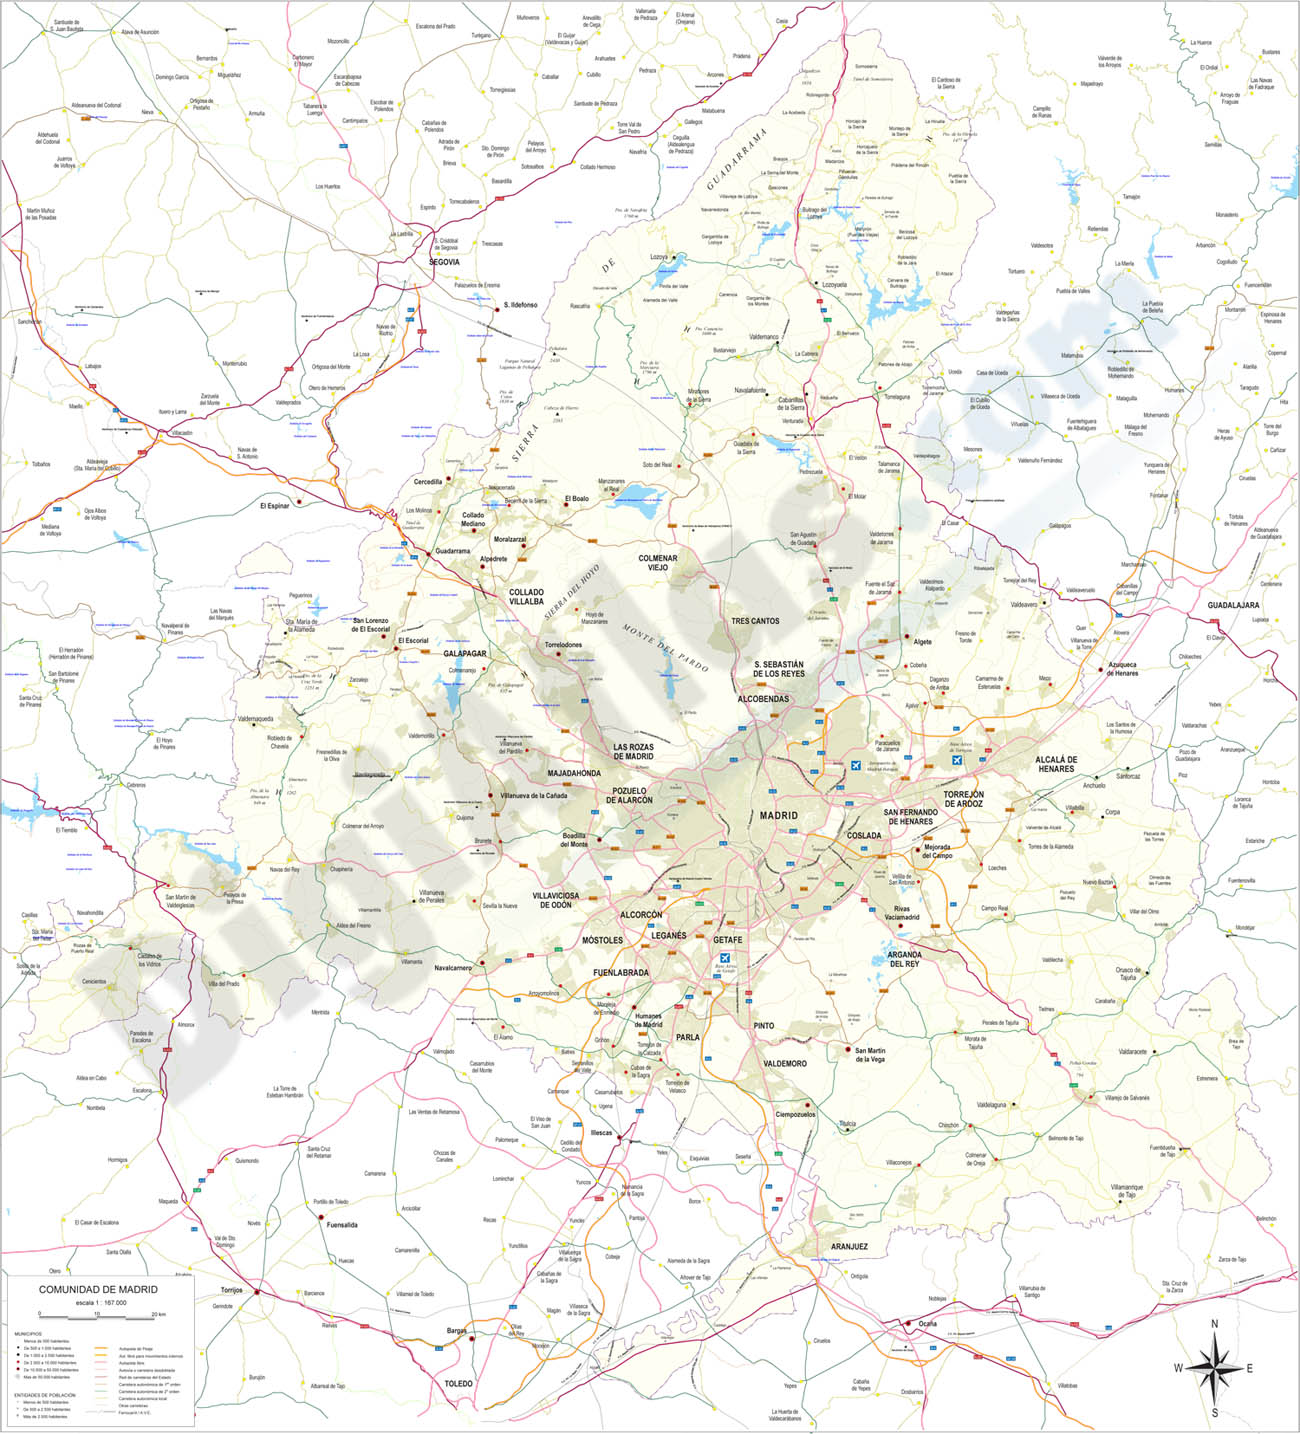 Madrid - detailed map of Community